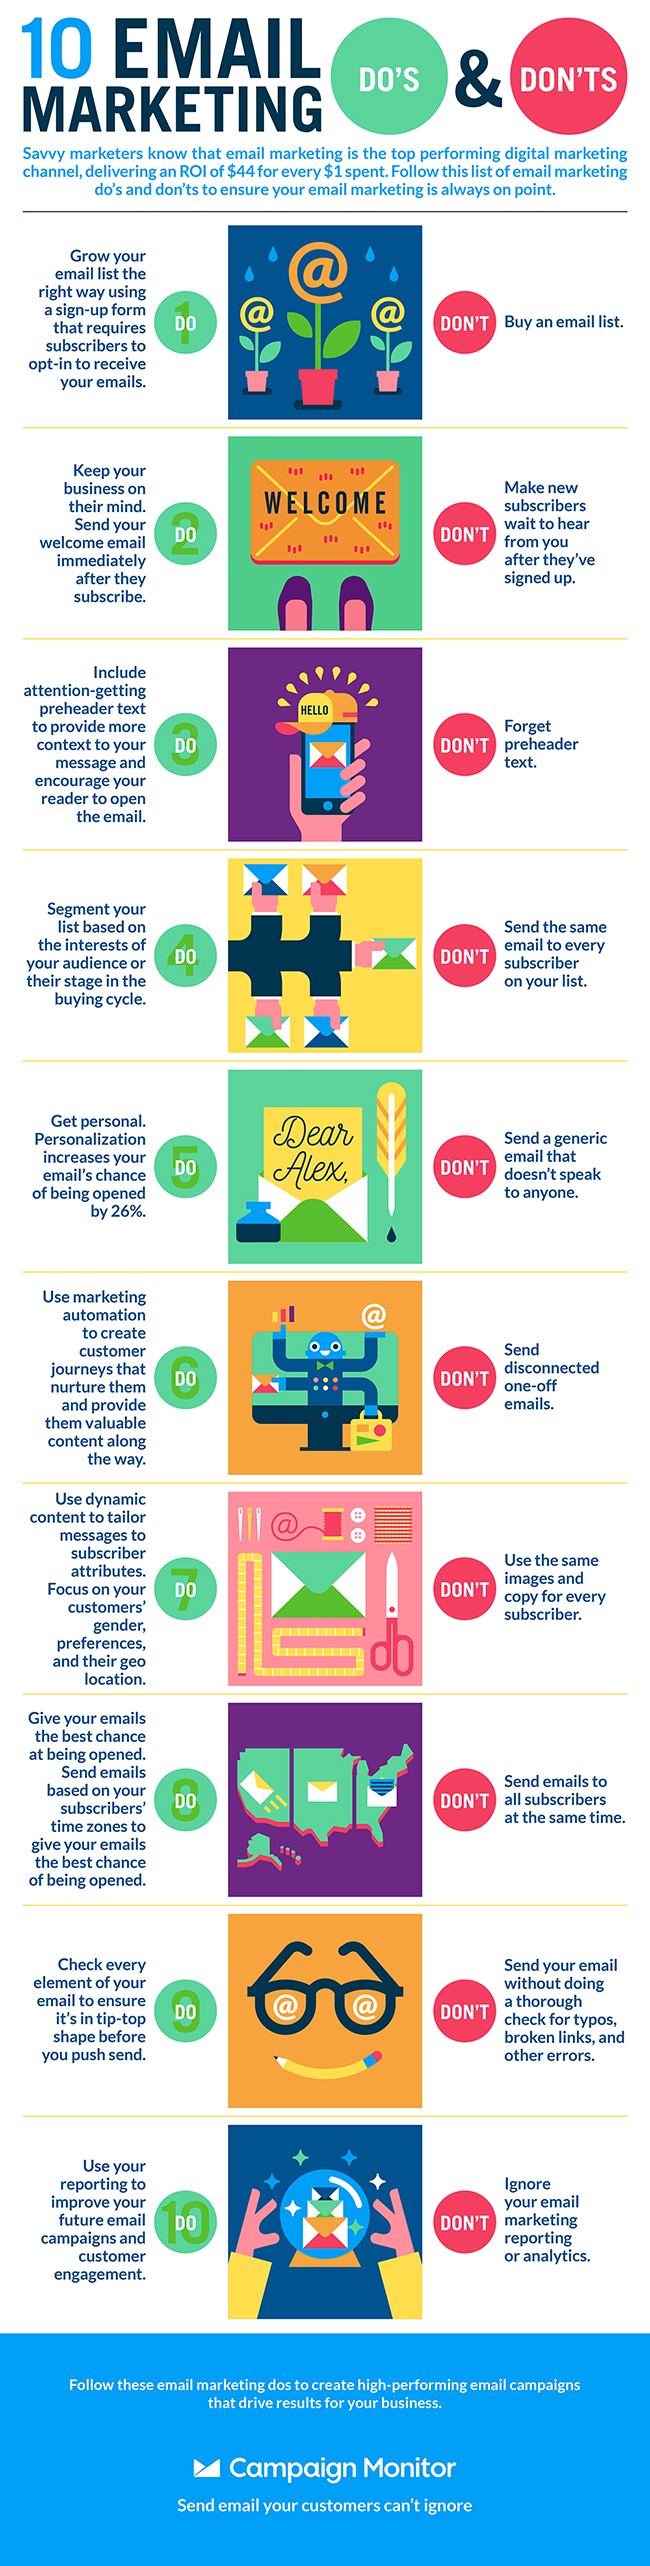 Infographic showing email marketing do and donts